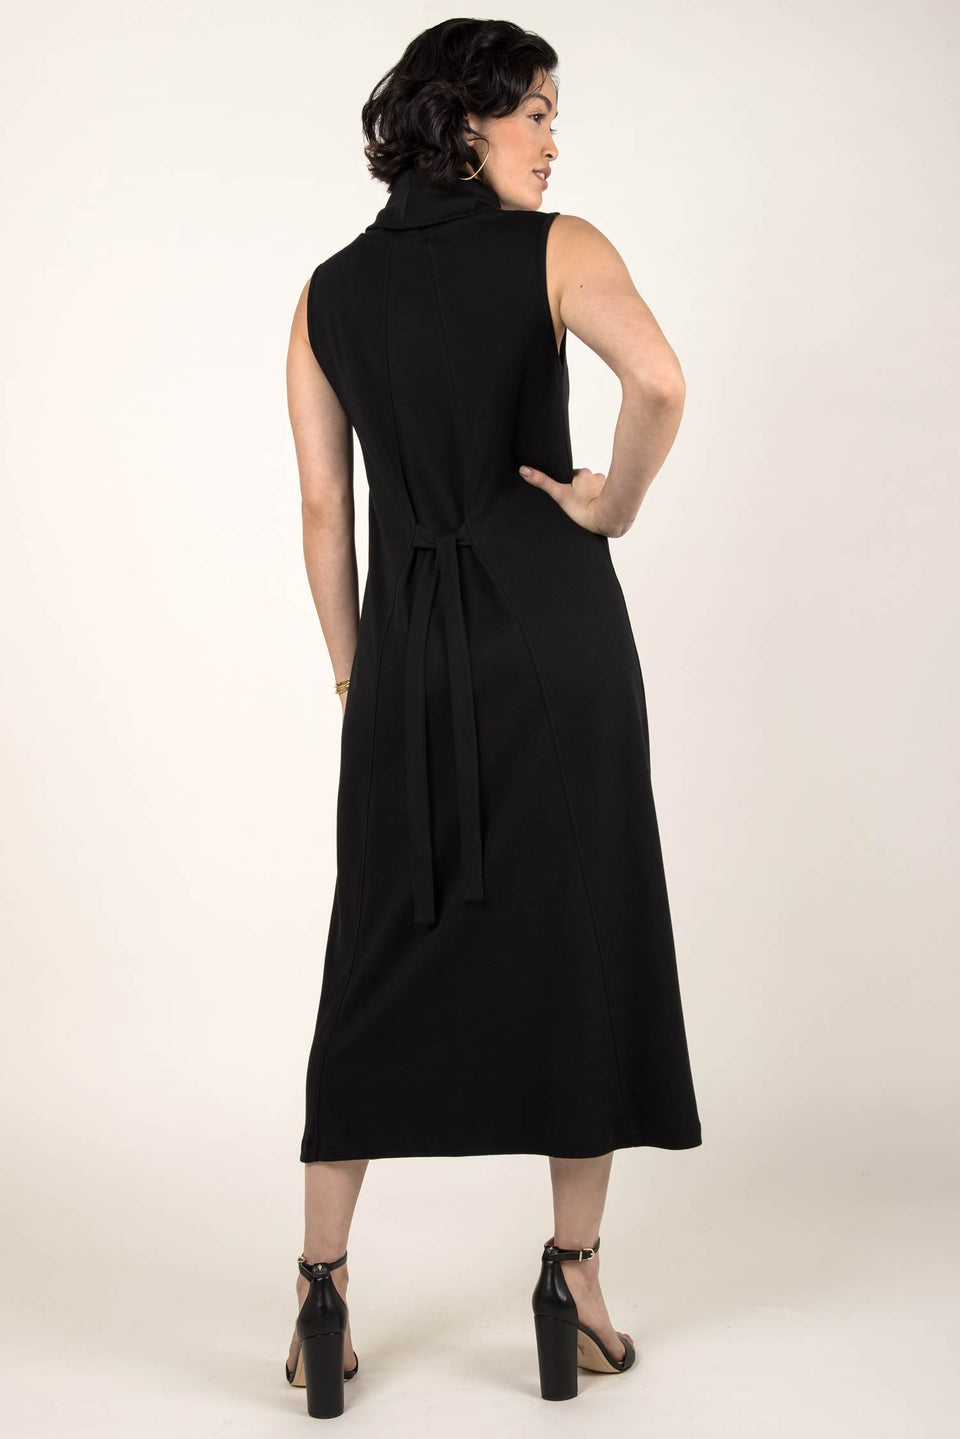 Foldover Cowl Neck Dress in Black